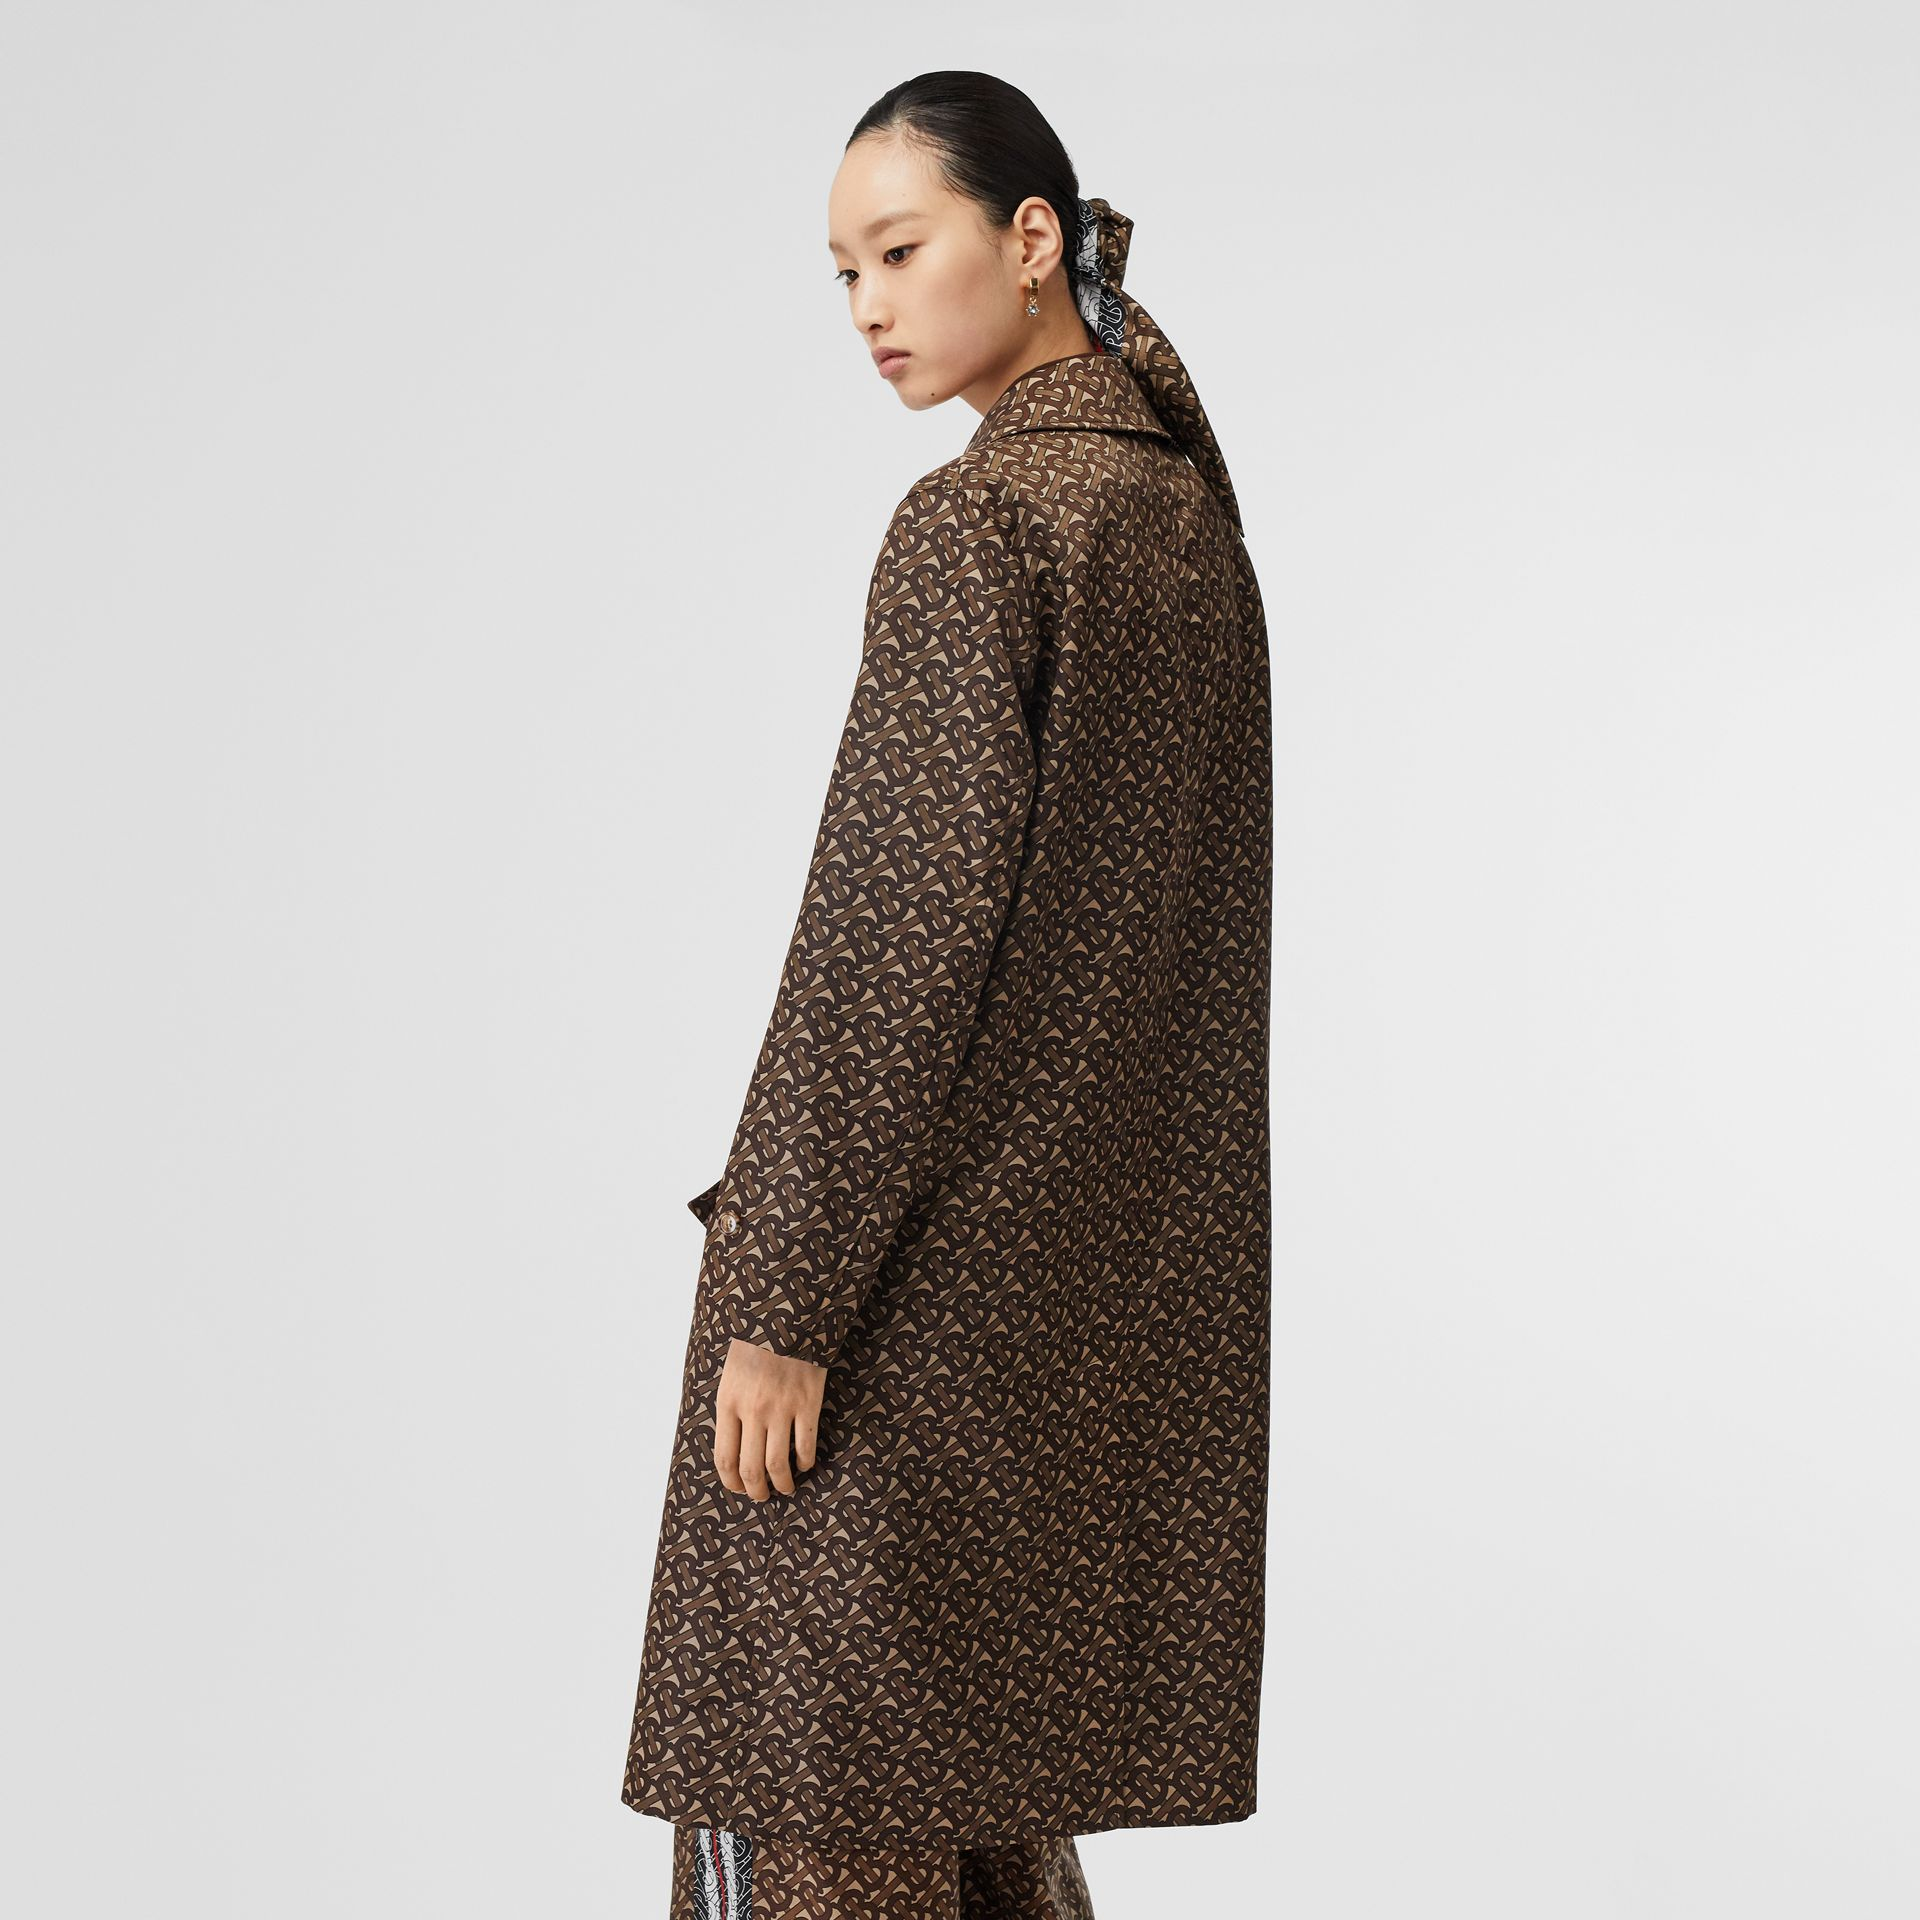 Monogram Stripe Print Nylon Car Coat in Bridle Brown - Women | Burberry Canada - gallery image 2